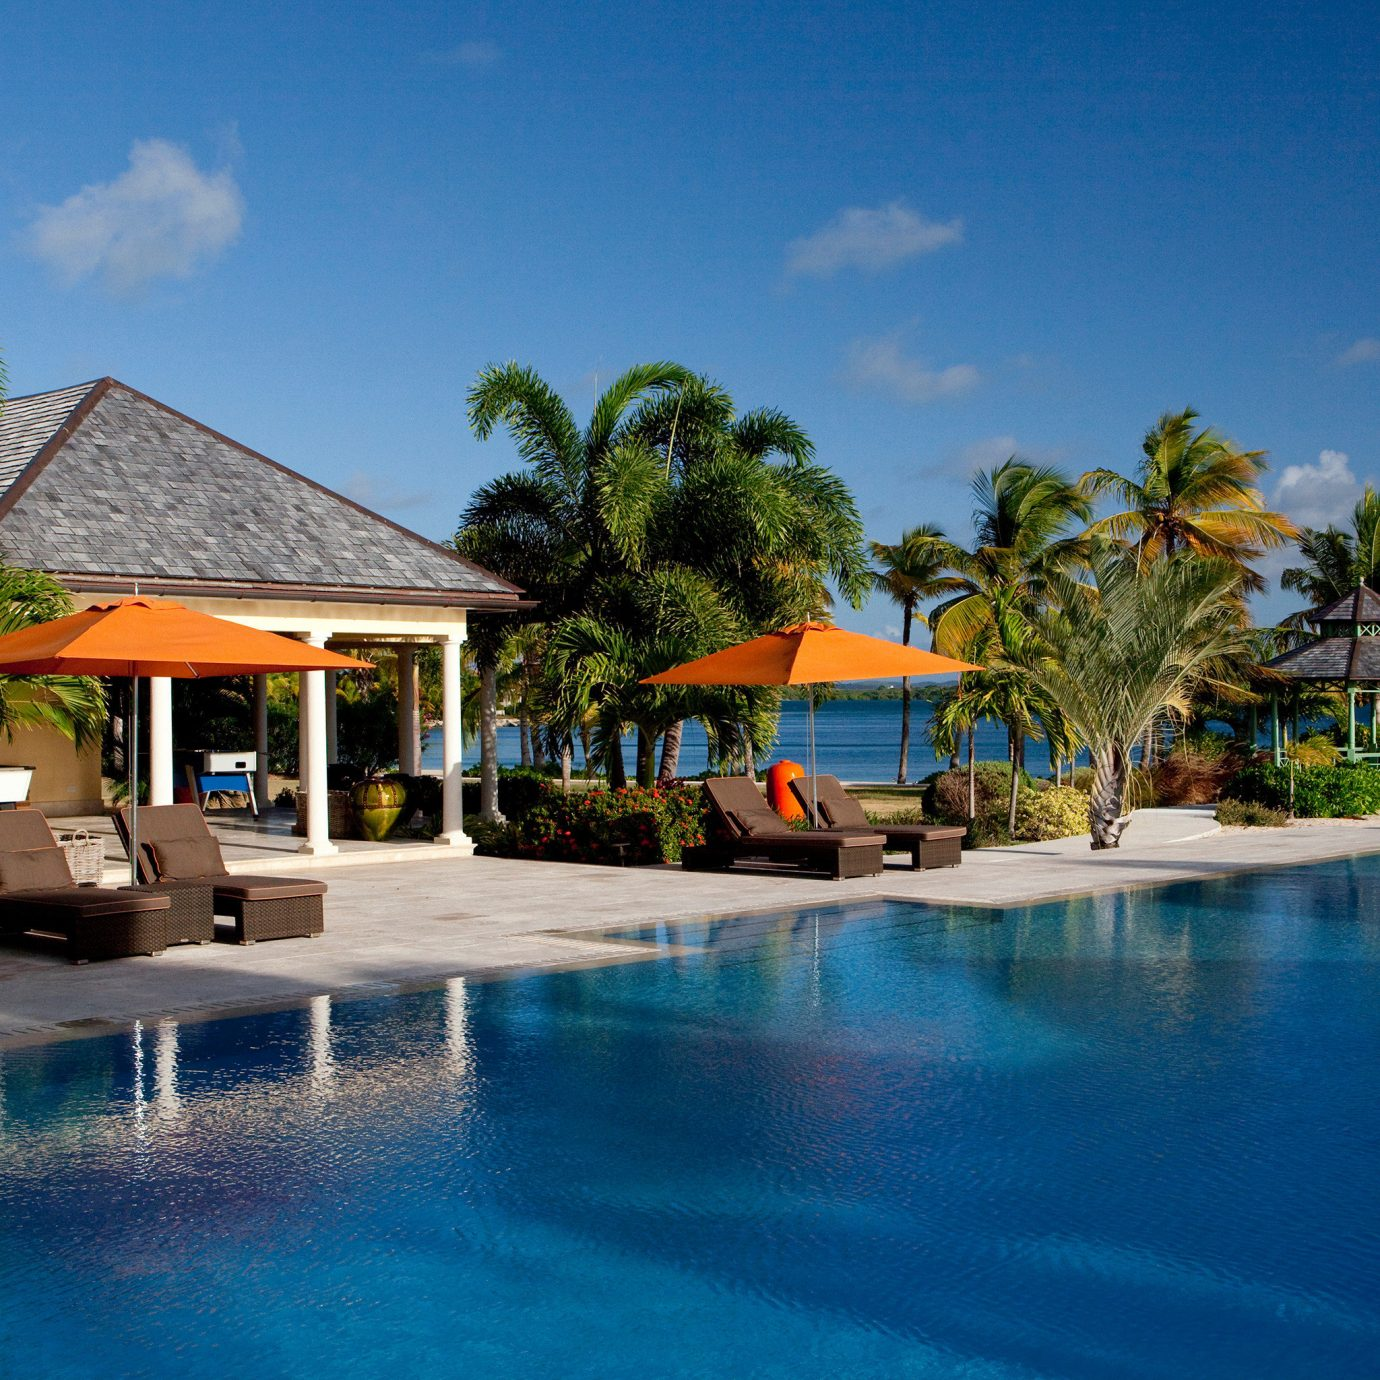 All-inclusive Beach Beachfront Deck Dining Drink Eat Island Luxury Patio Pool Scenic views Waterfront tree sky water Resort swimming pool leisure house caribbean resort town Lagoon Sea tropics Water park swimming lined